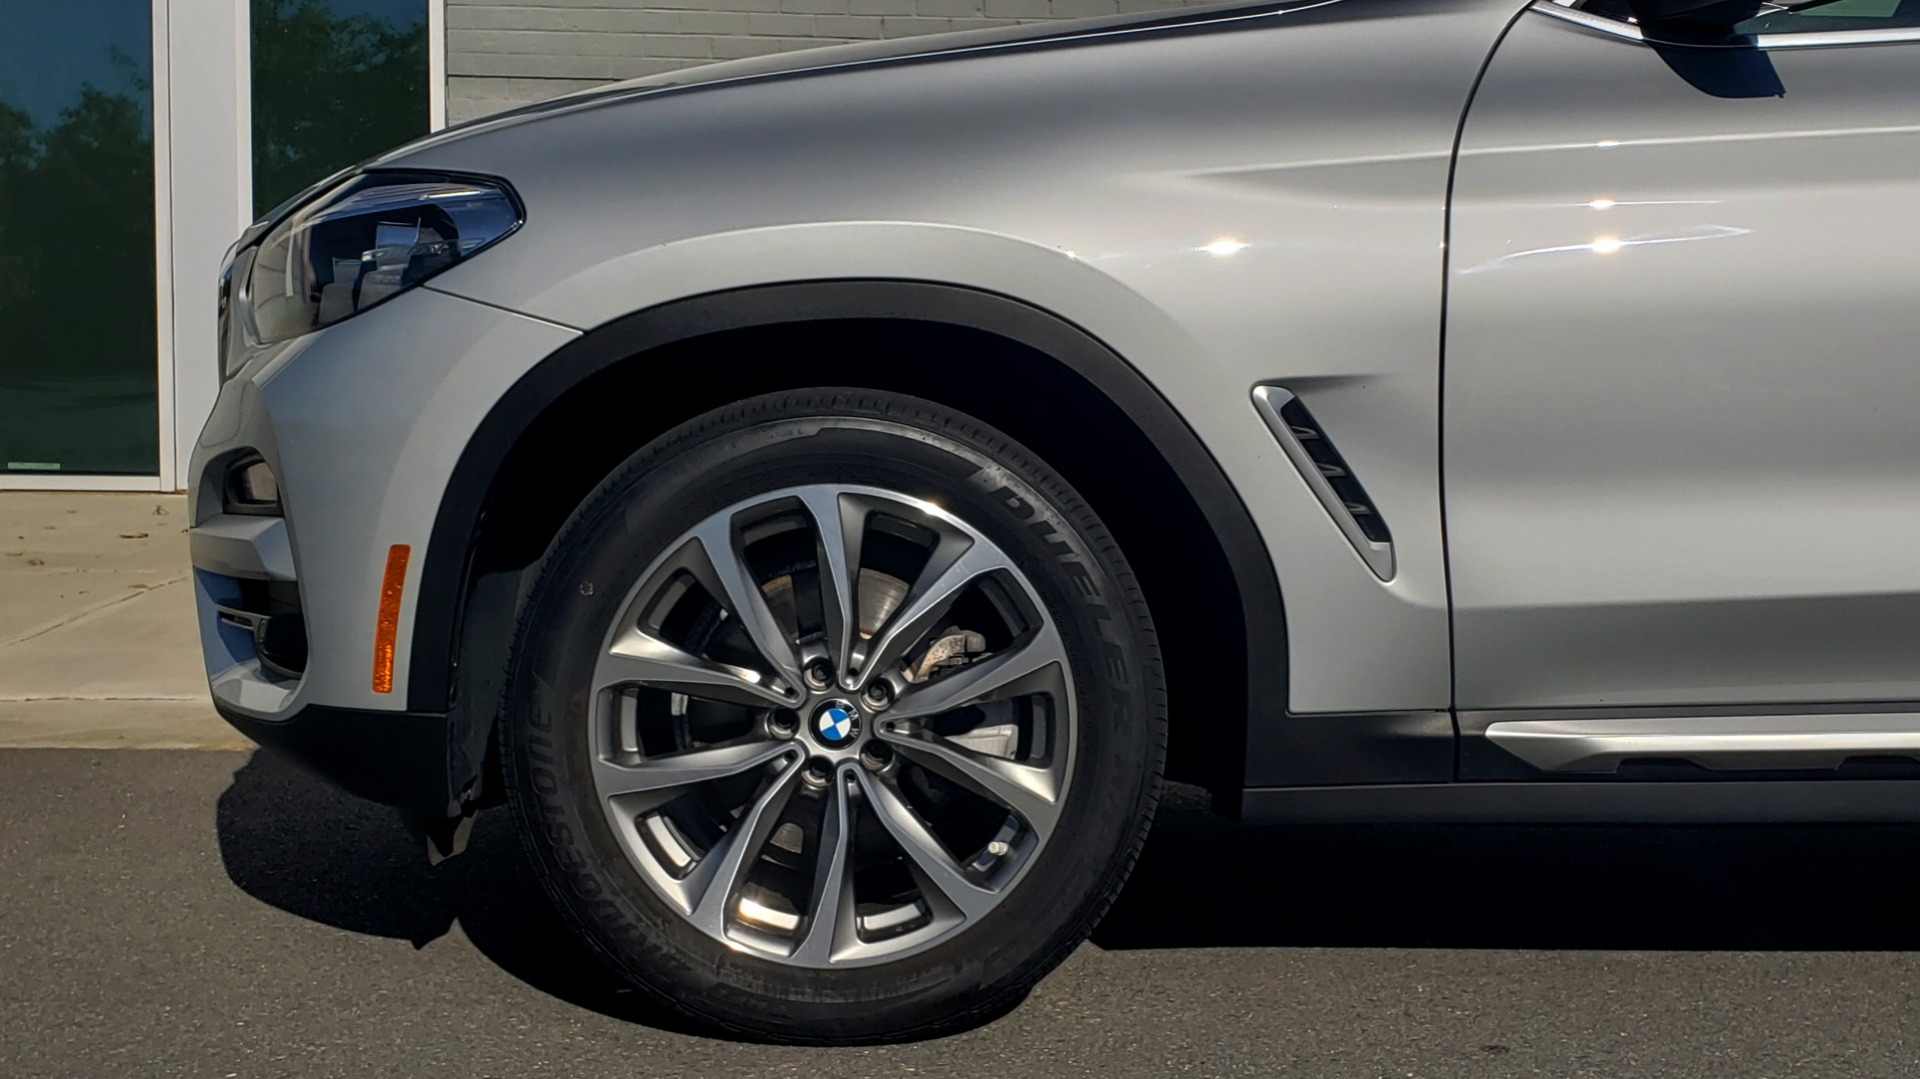 Used 2019 BMW X3 XDRIVE30I / DRVR ASST / PANO-ROOF / HTD STS / REARVIEW for sale $41,995 at Formula Imports in Charlotte NC 28227 81